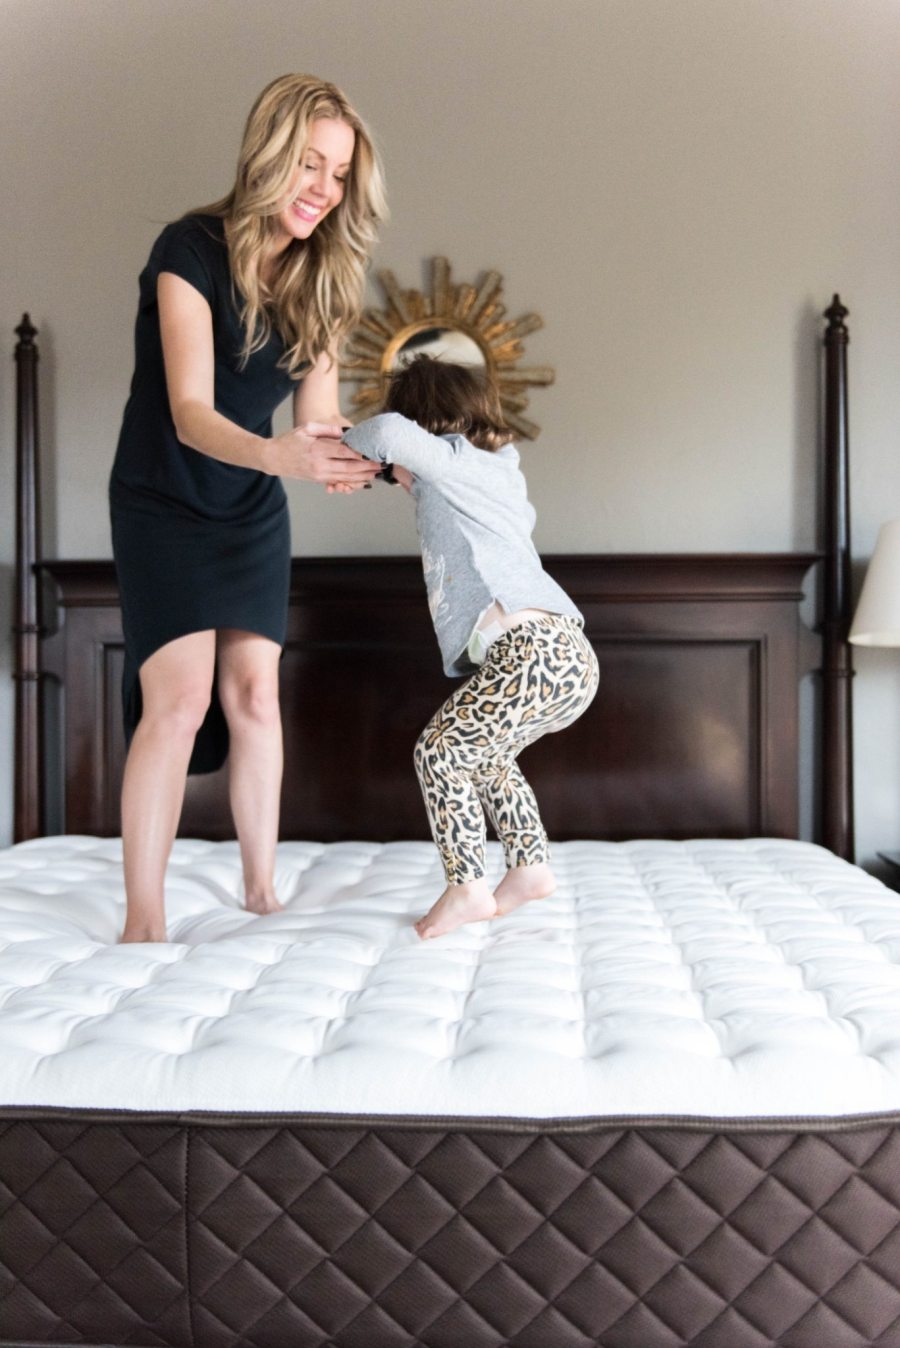 the memory in mattress review zdesign foam and at home bedroom christeli comfort beauty